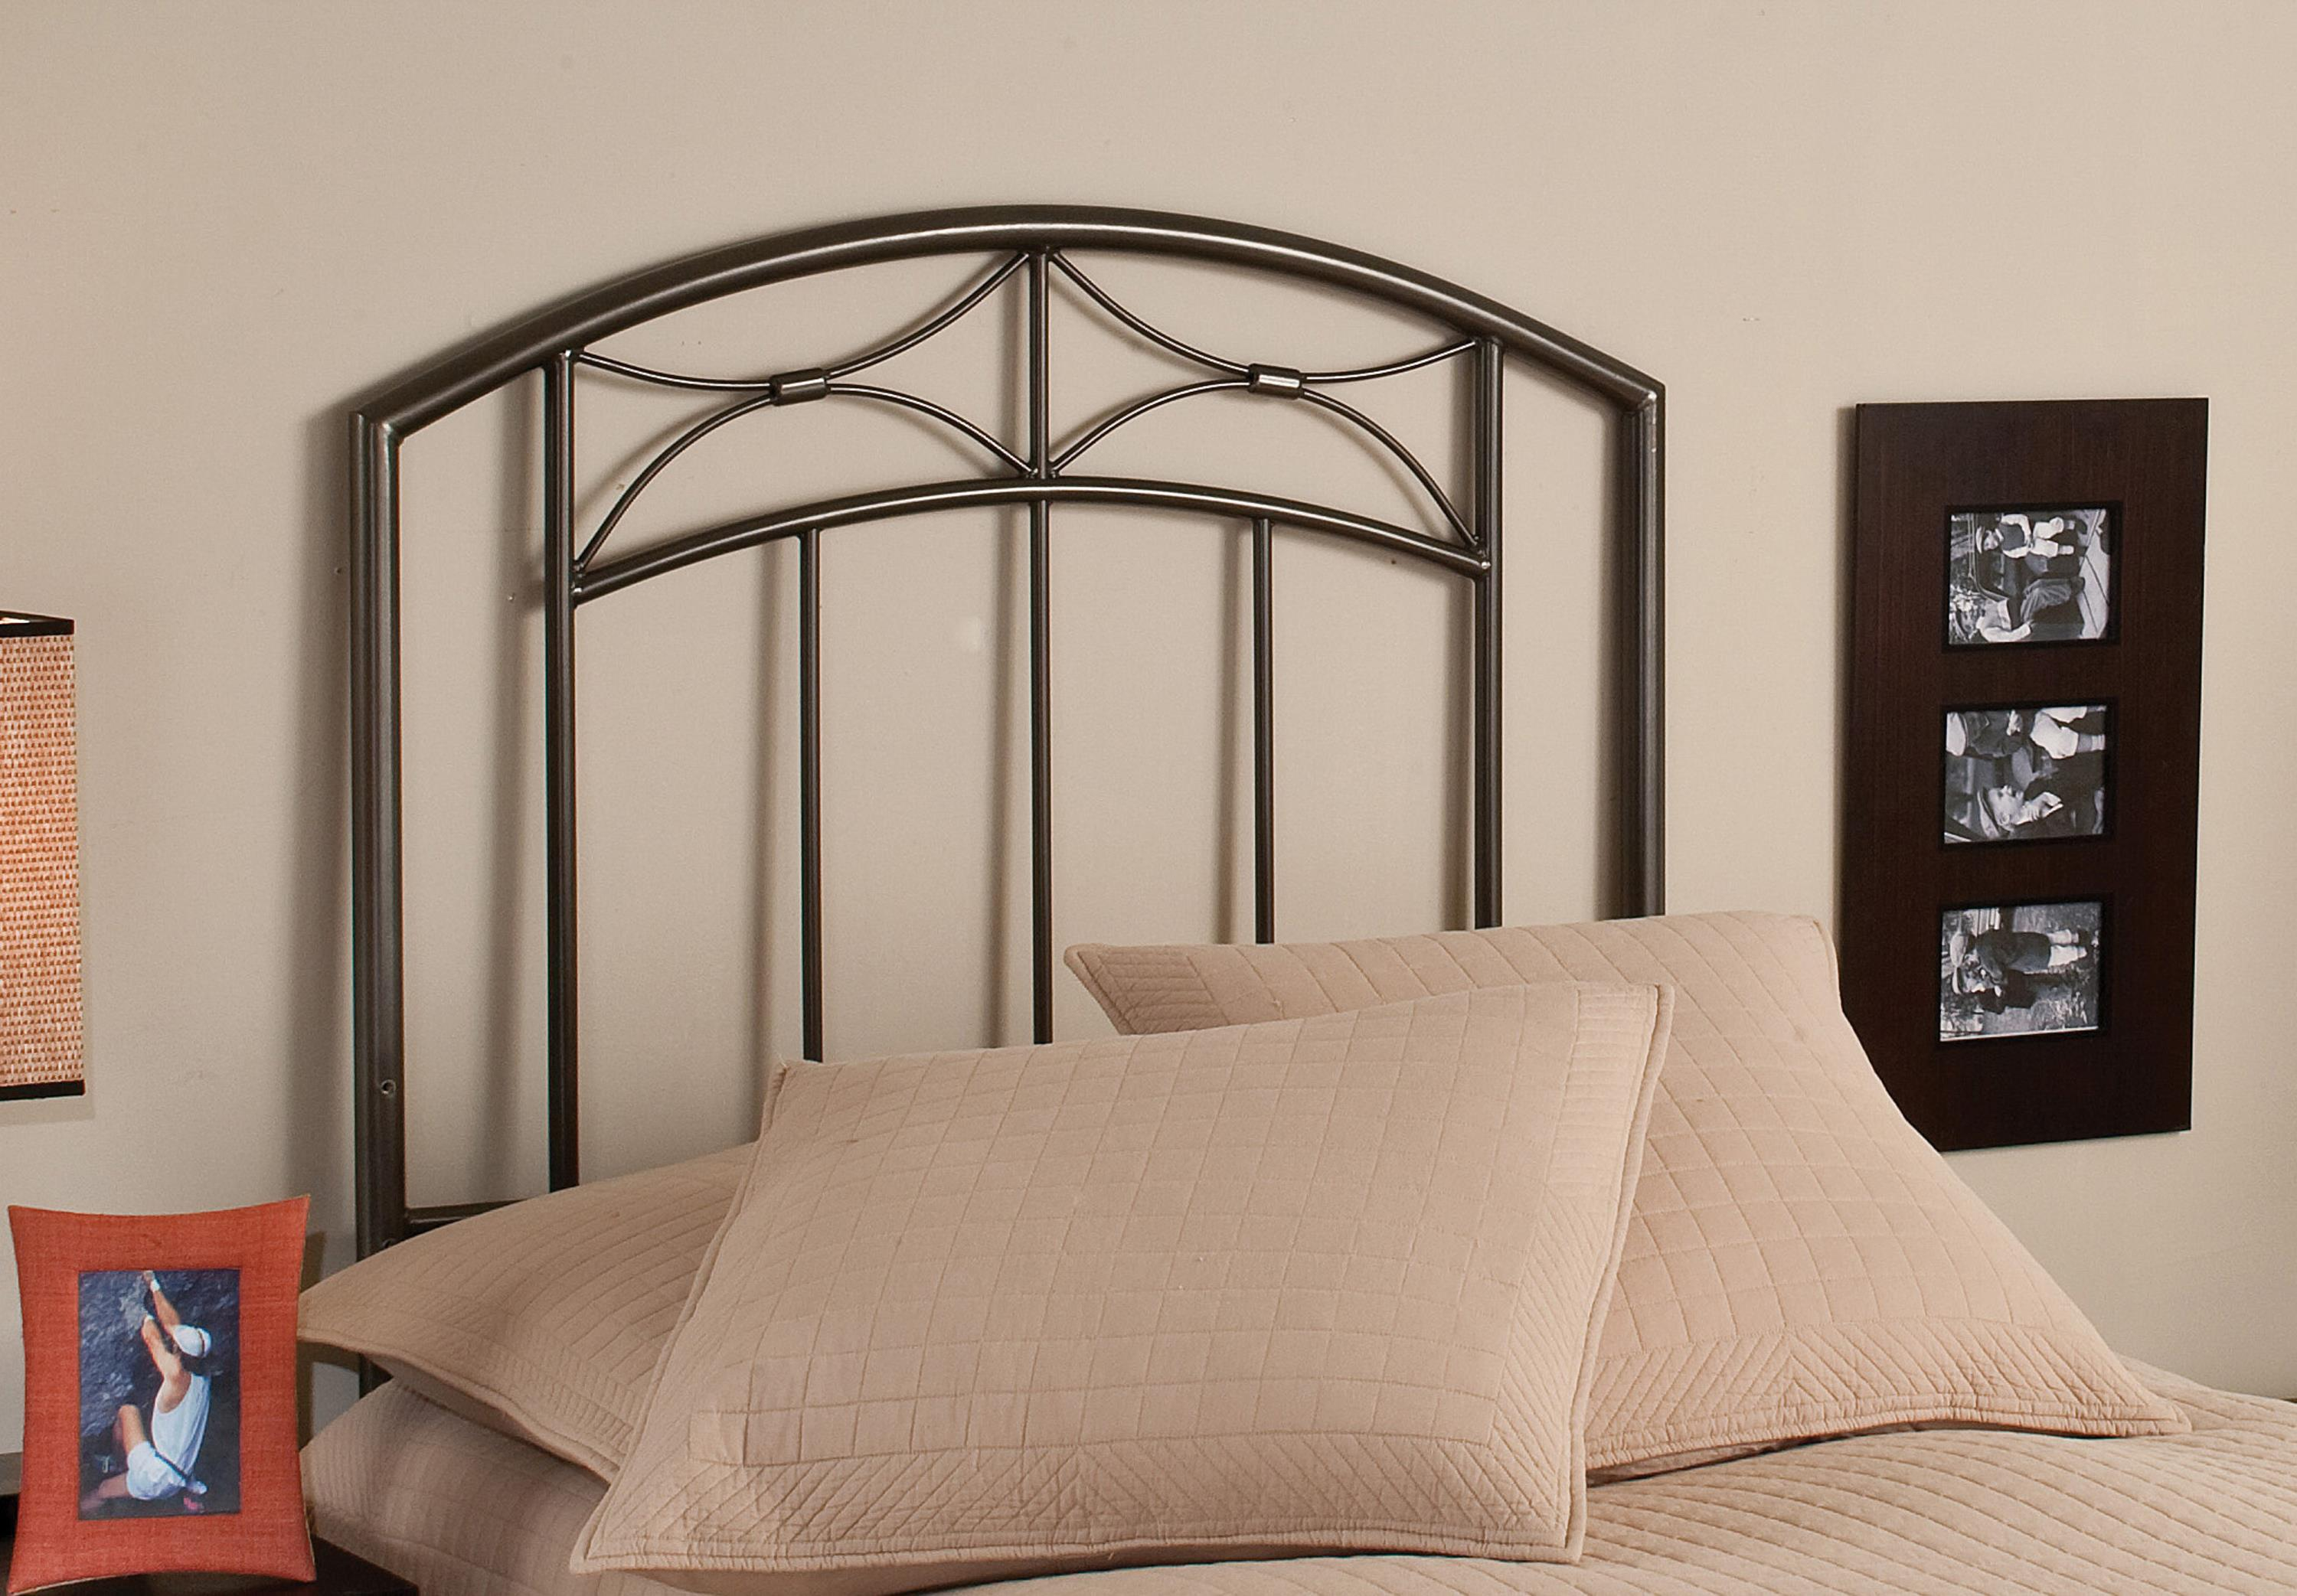 Metal Beds Morris Twin Headboard by Hillsdale at Darvin Furniture